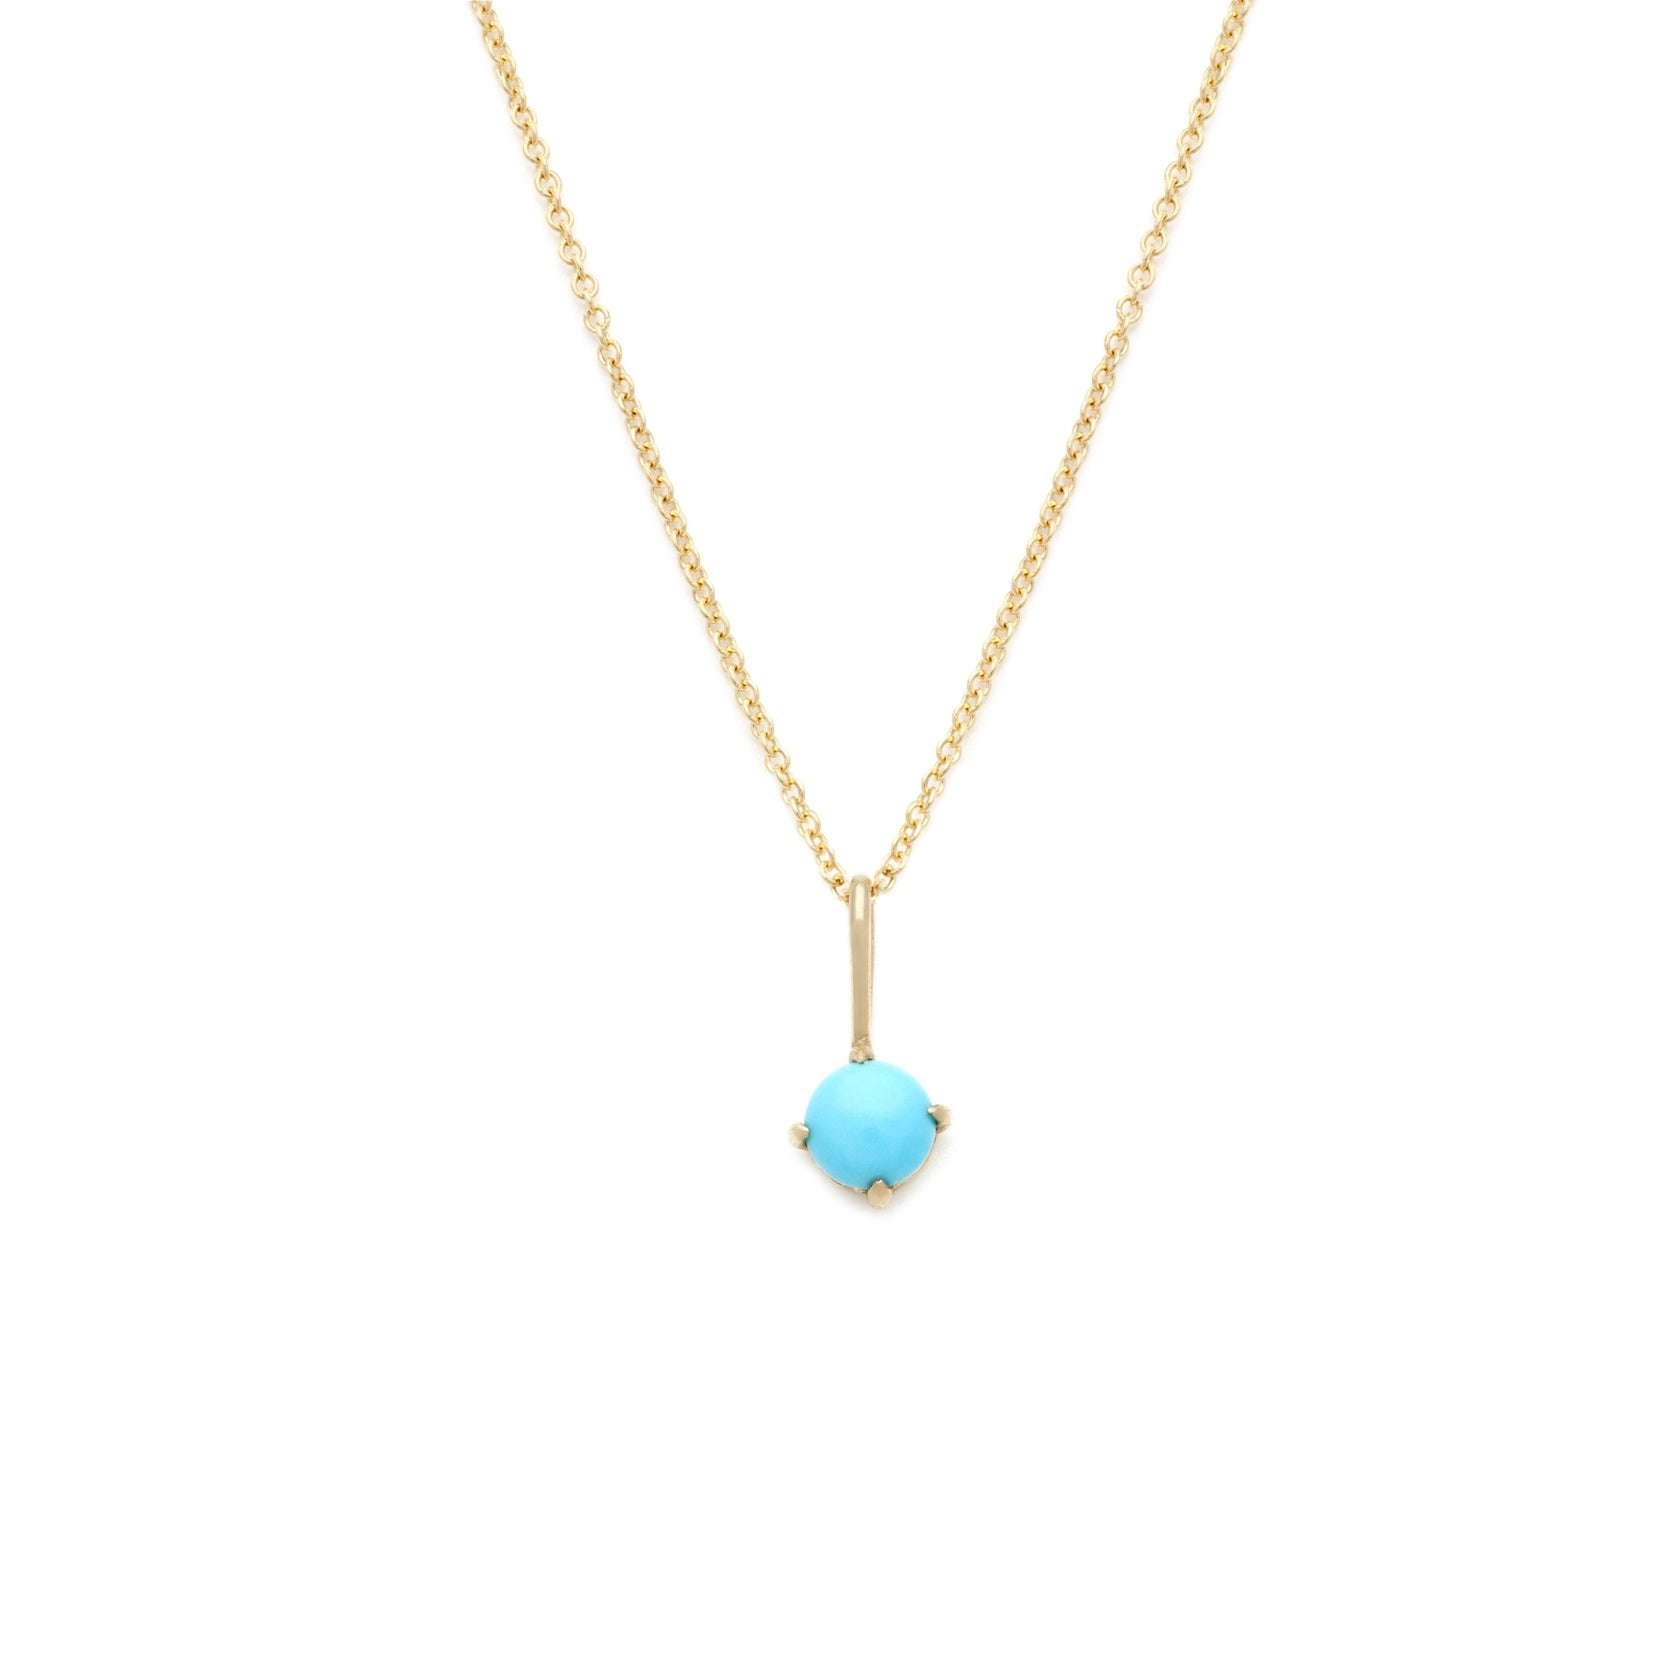 Coveted Turquoise Pendant - 14k Solid Gold